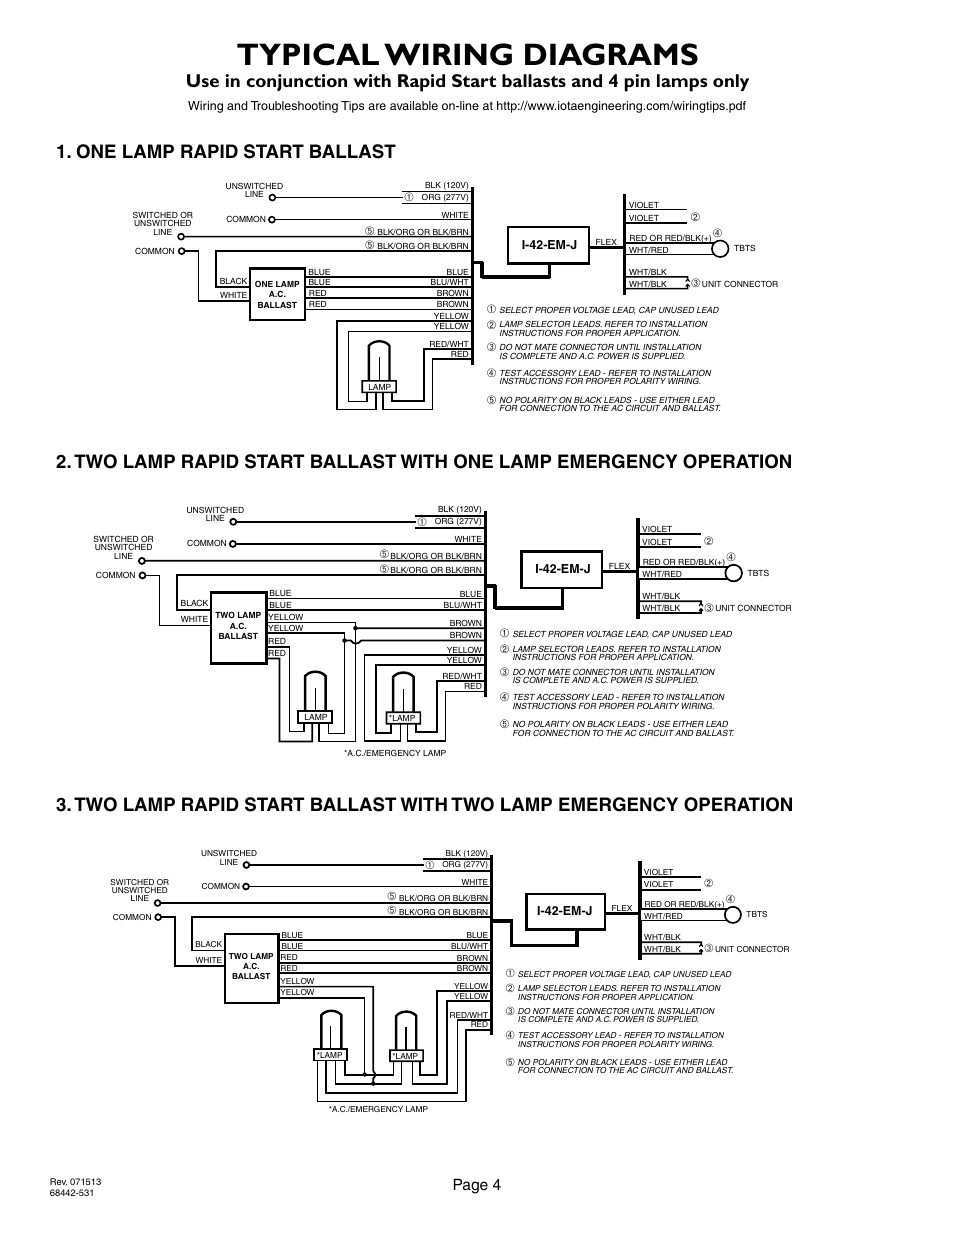 hight resolution of typical wiring diagrams page 4 2lrsb42j ac two lamp rapid start ballast iota i 42 em j user manual page 4 4